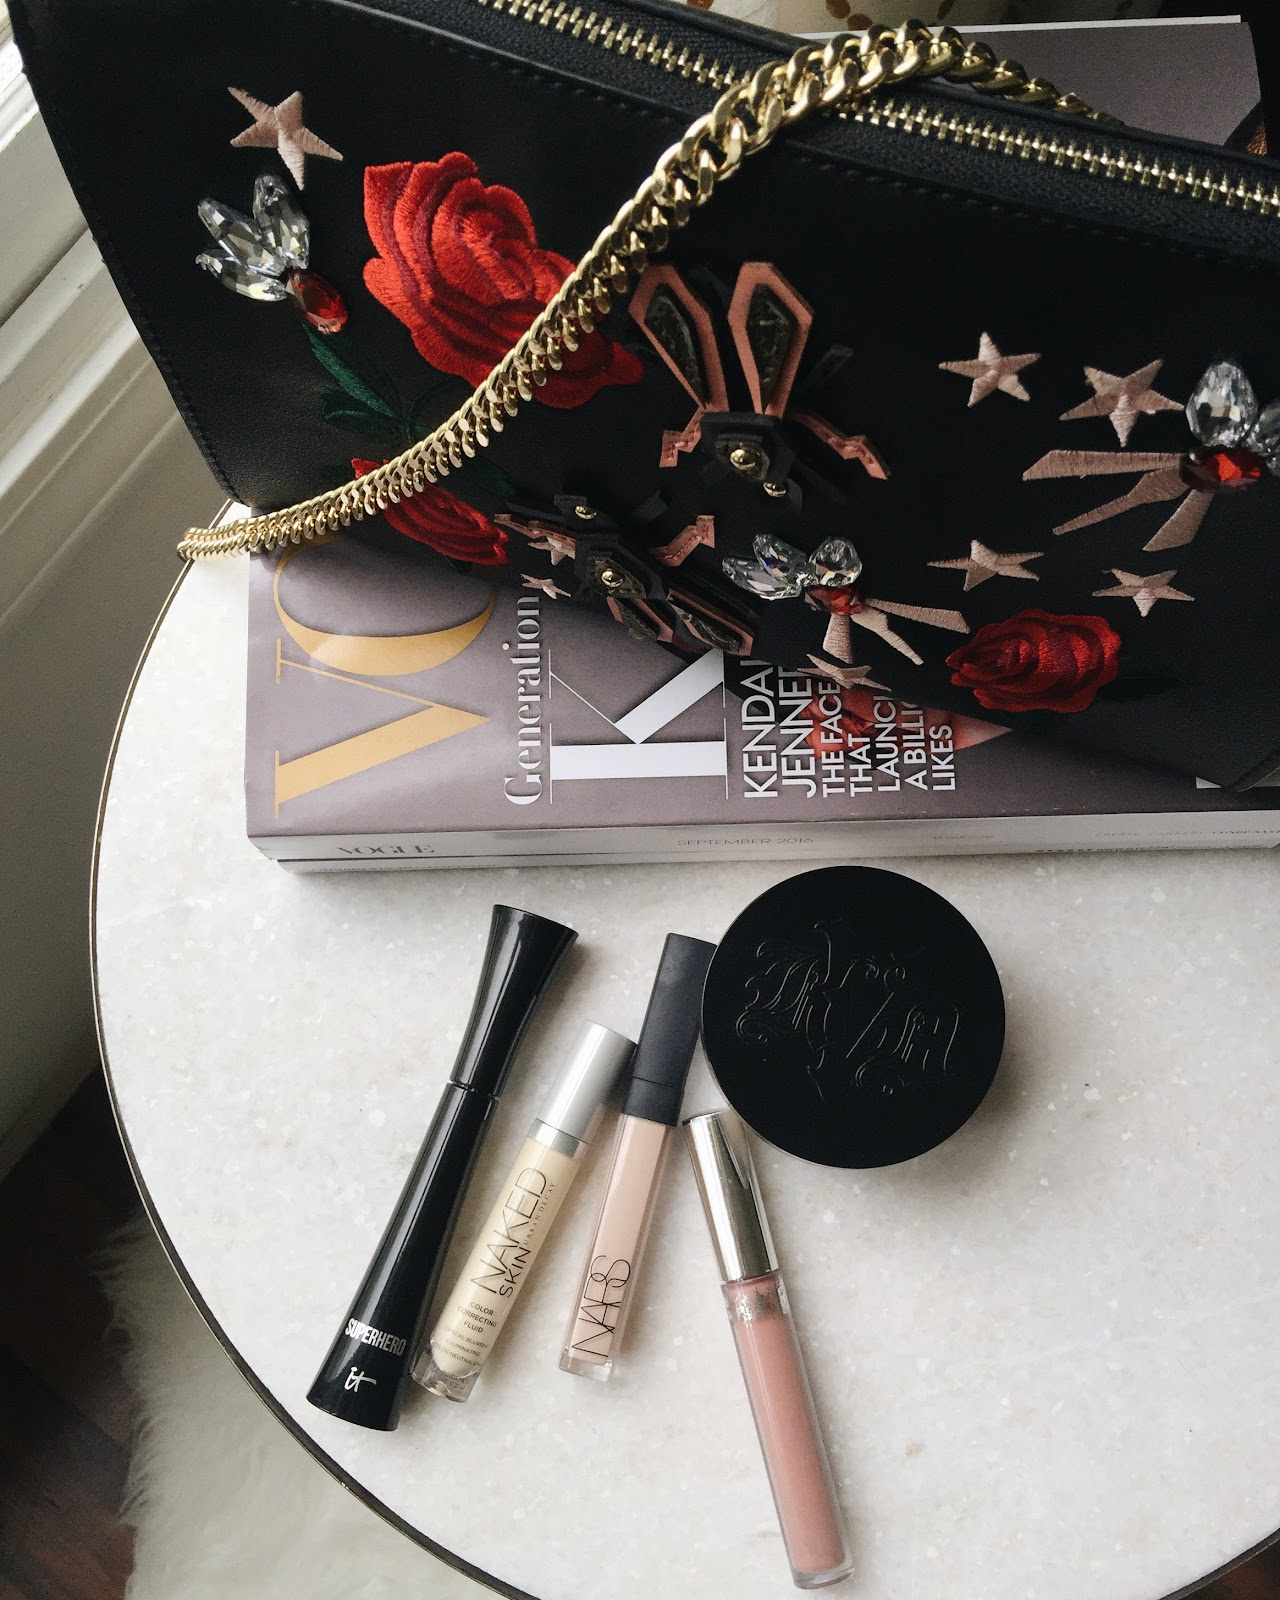 5 makeup products I'm loving lately | Love, Lenore